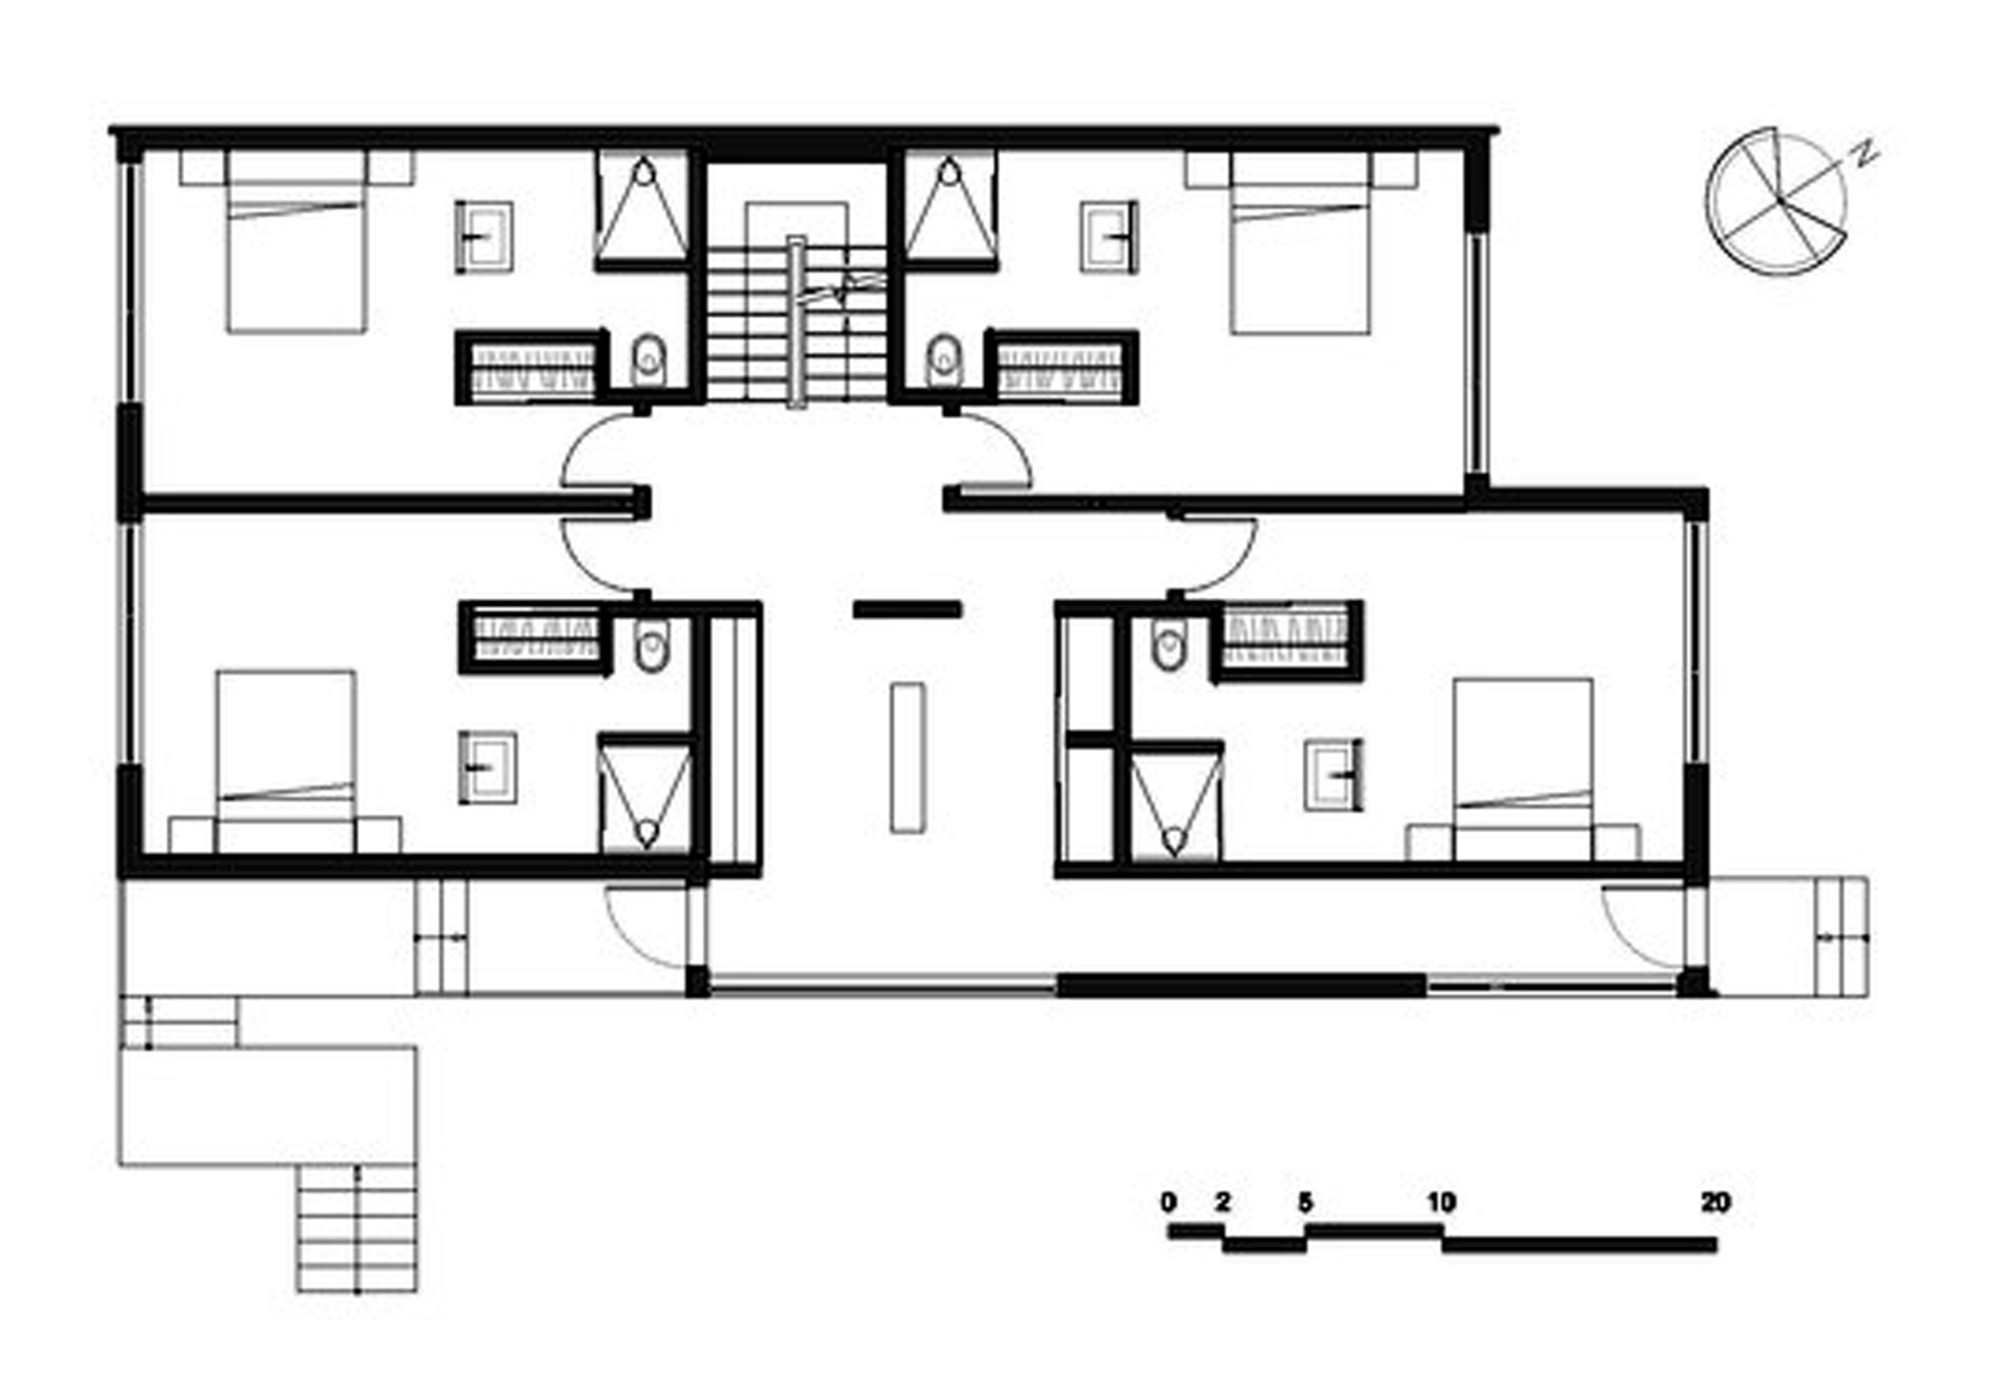 Gallery of malbaie viii residence mu architecture 24 for Croquis de casas para construir